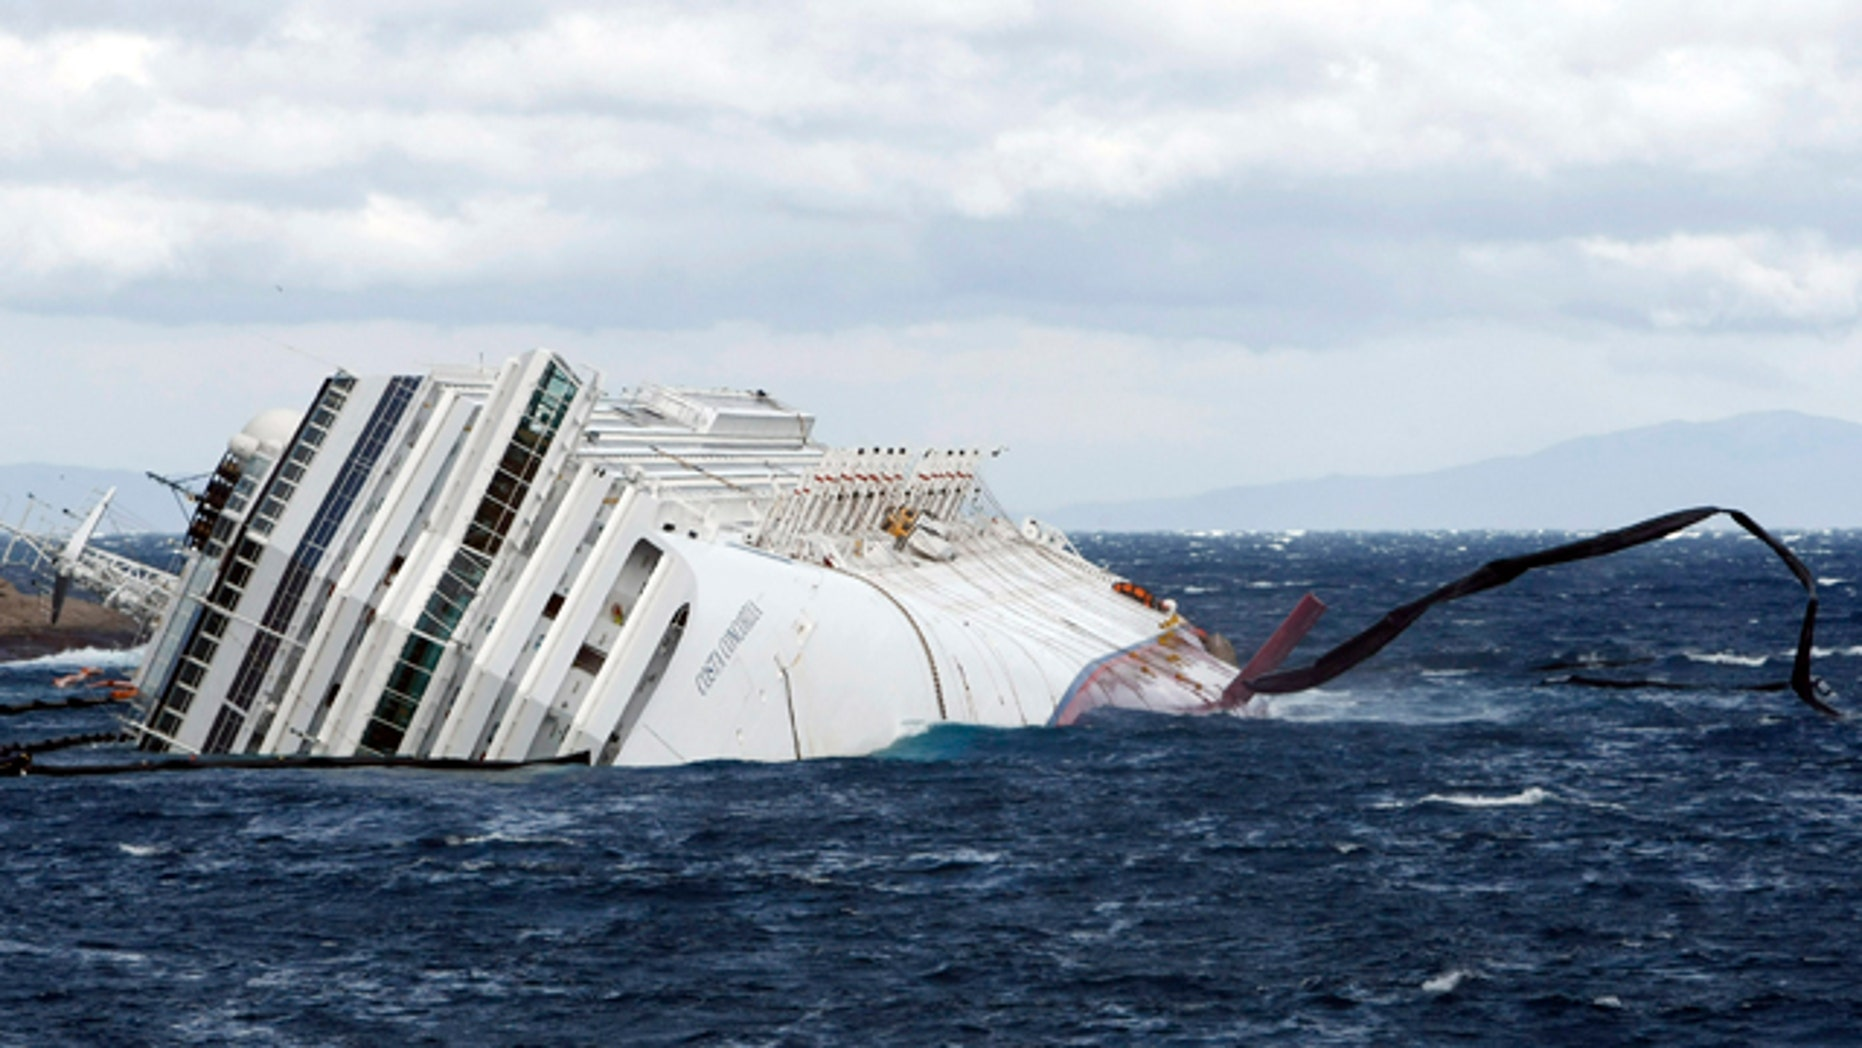 Feb. 1: Anti oil floating barriers are pushed by strong winds around the grounded cruise ship Costa Concordia off the Tuscan island of Giglio, Italy.